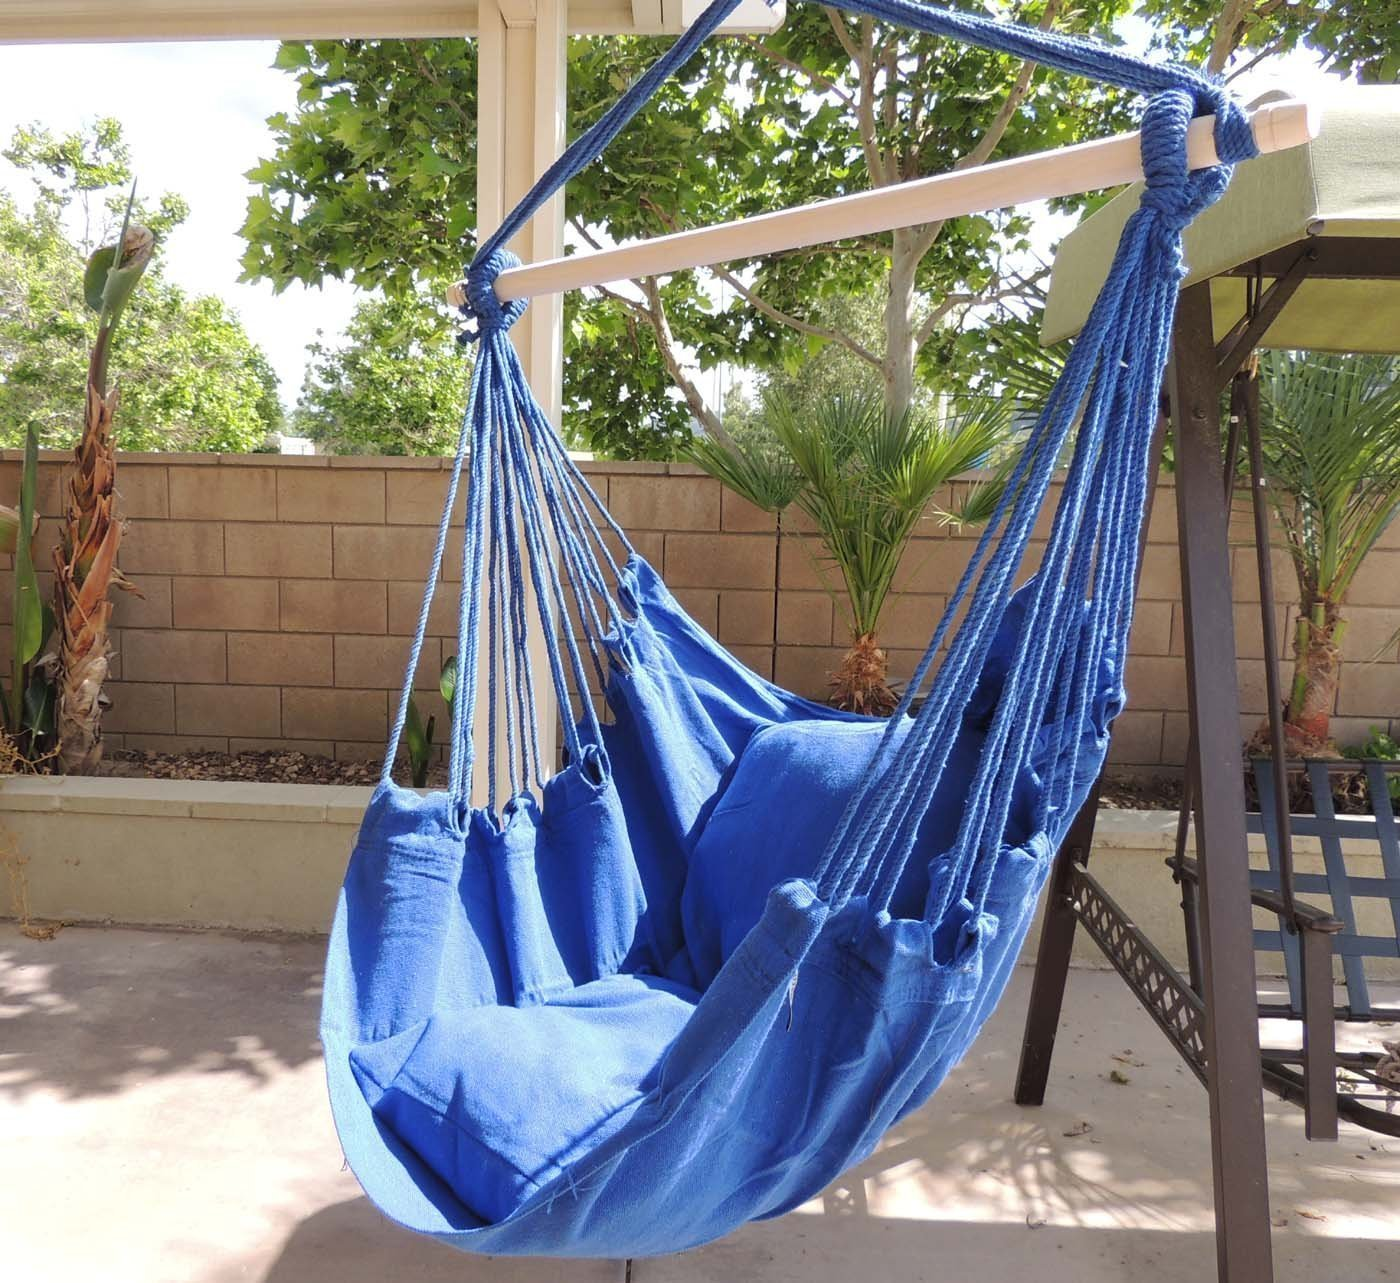 seat chair dp com blue gray porch garden hanging swing rope outdoor airblasters hammock amazon